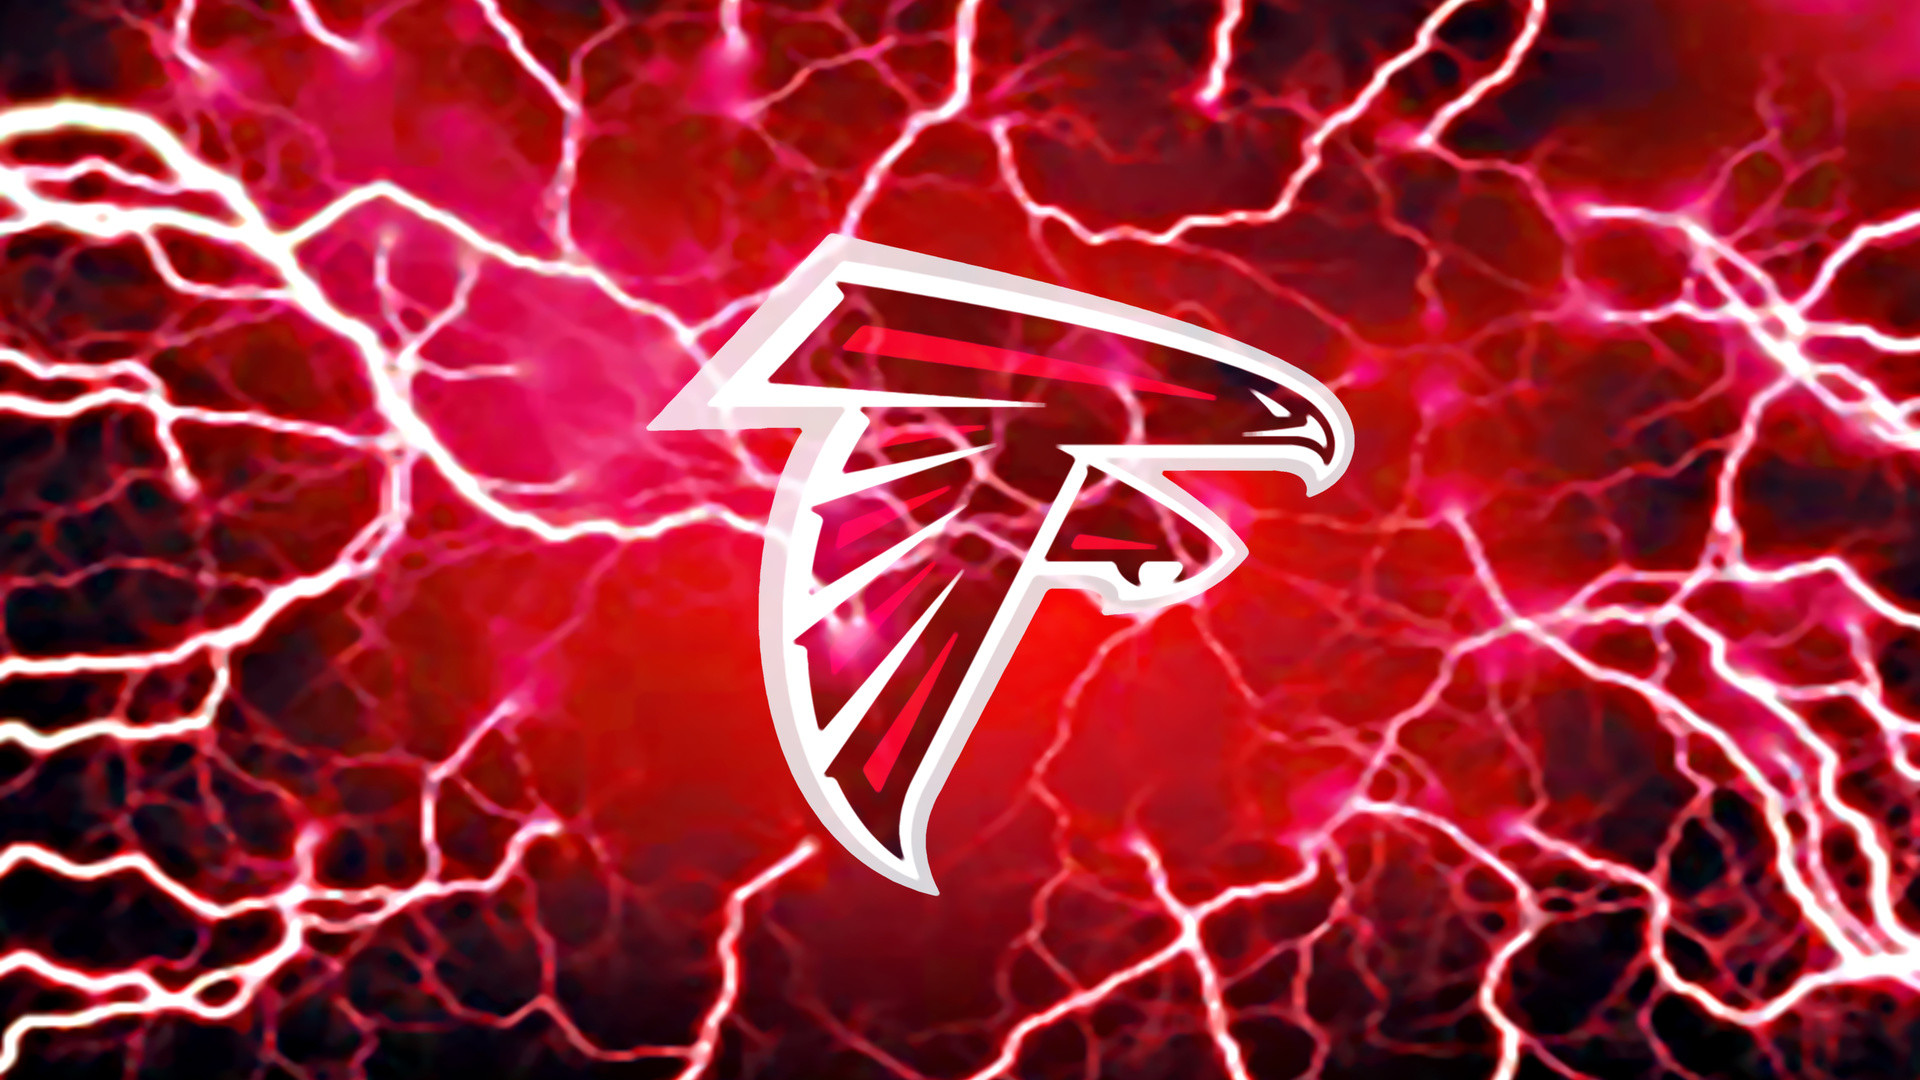 Falcons Iphone Wallpaper: Atlanta Falcons Wallpaper (67+ Images